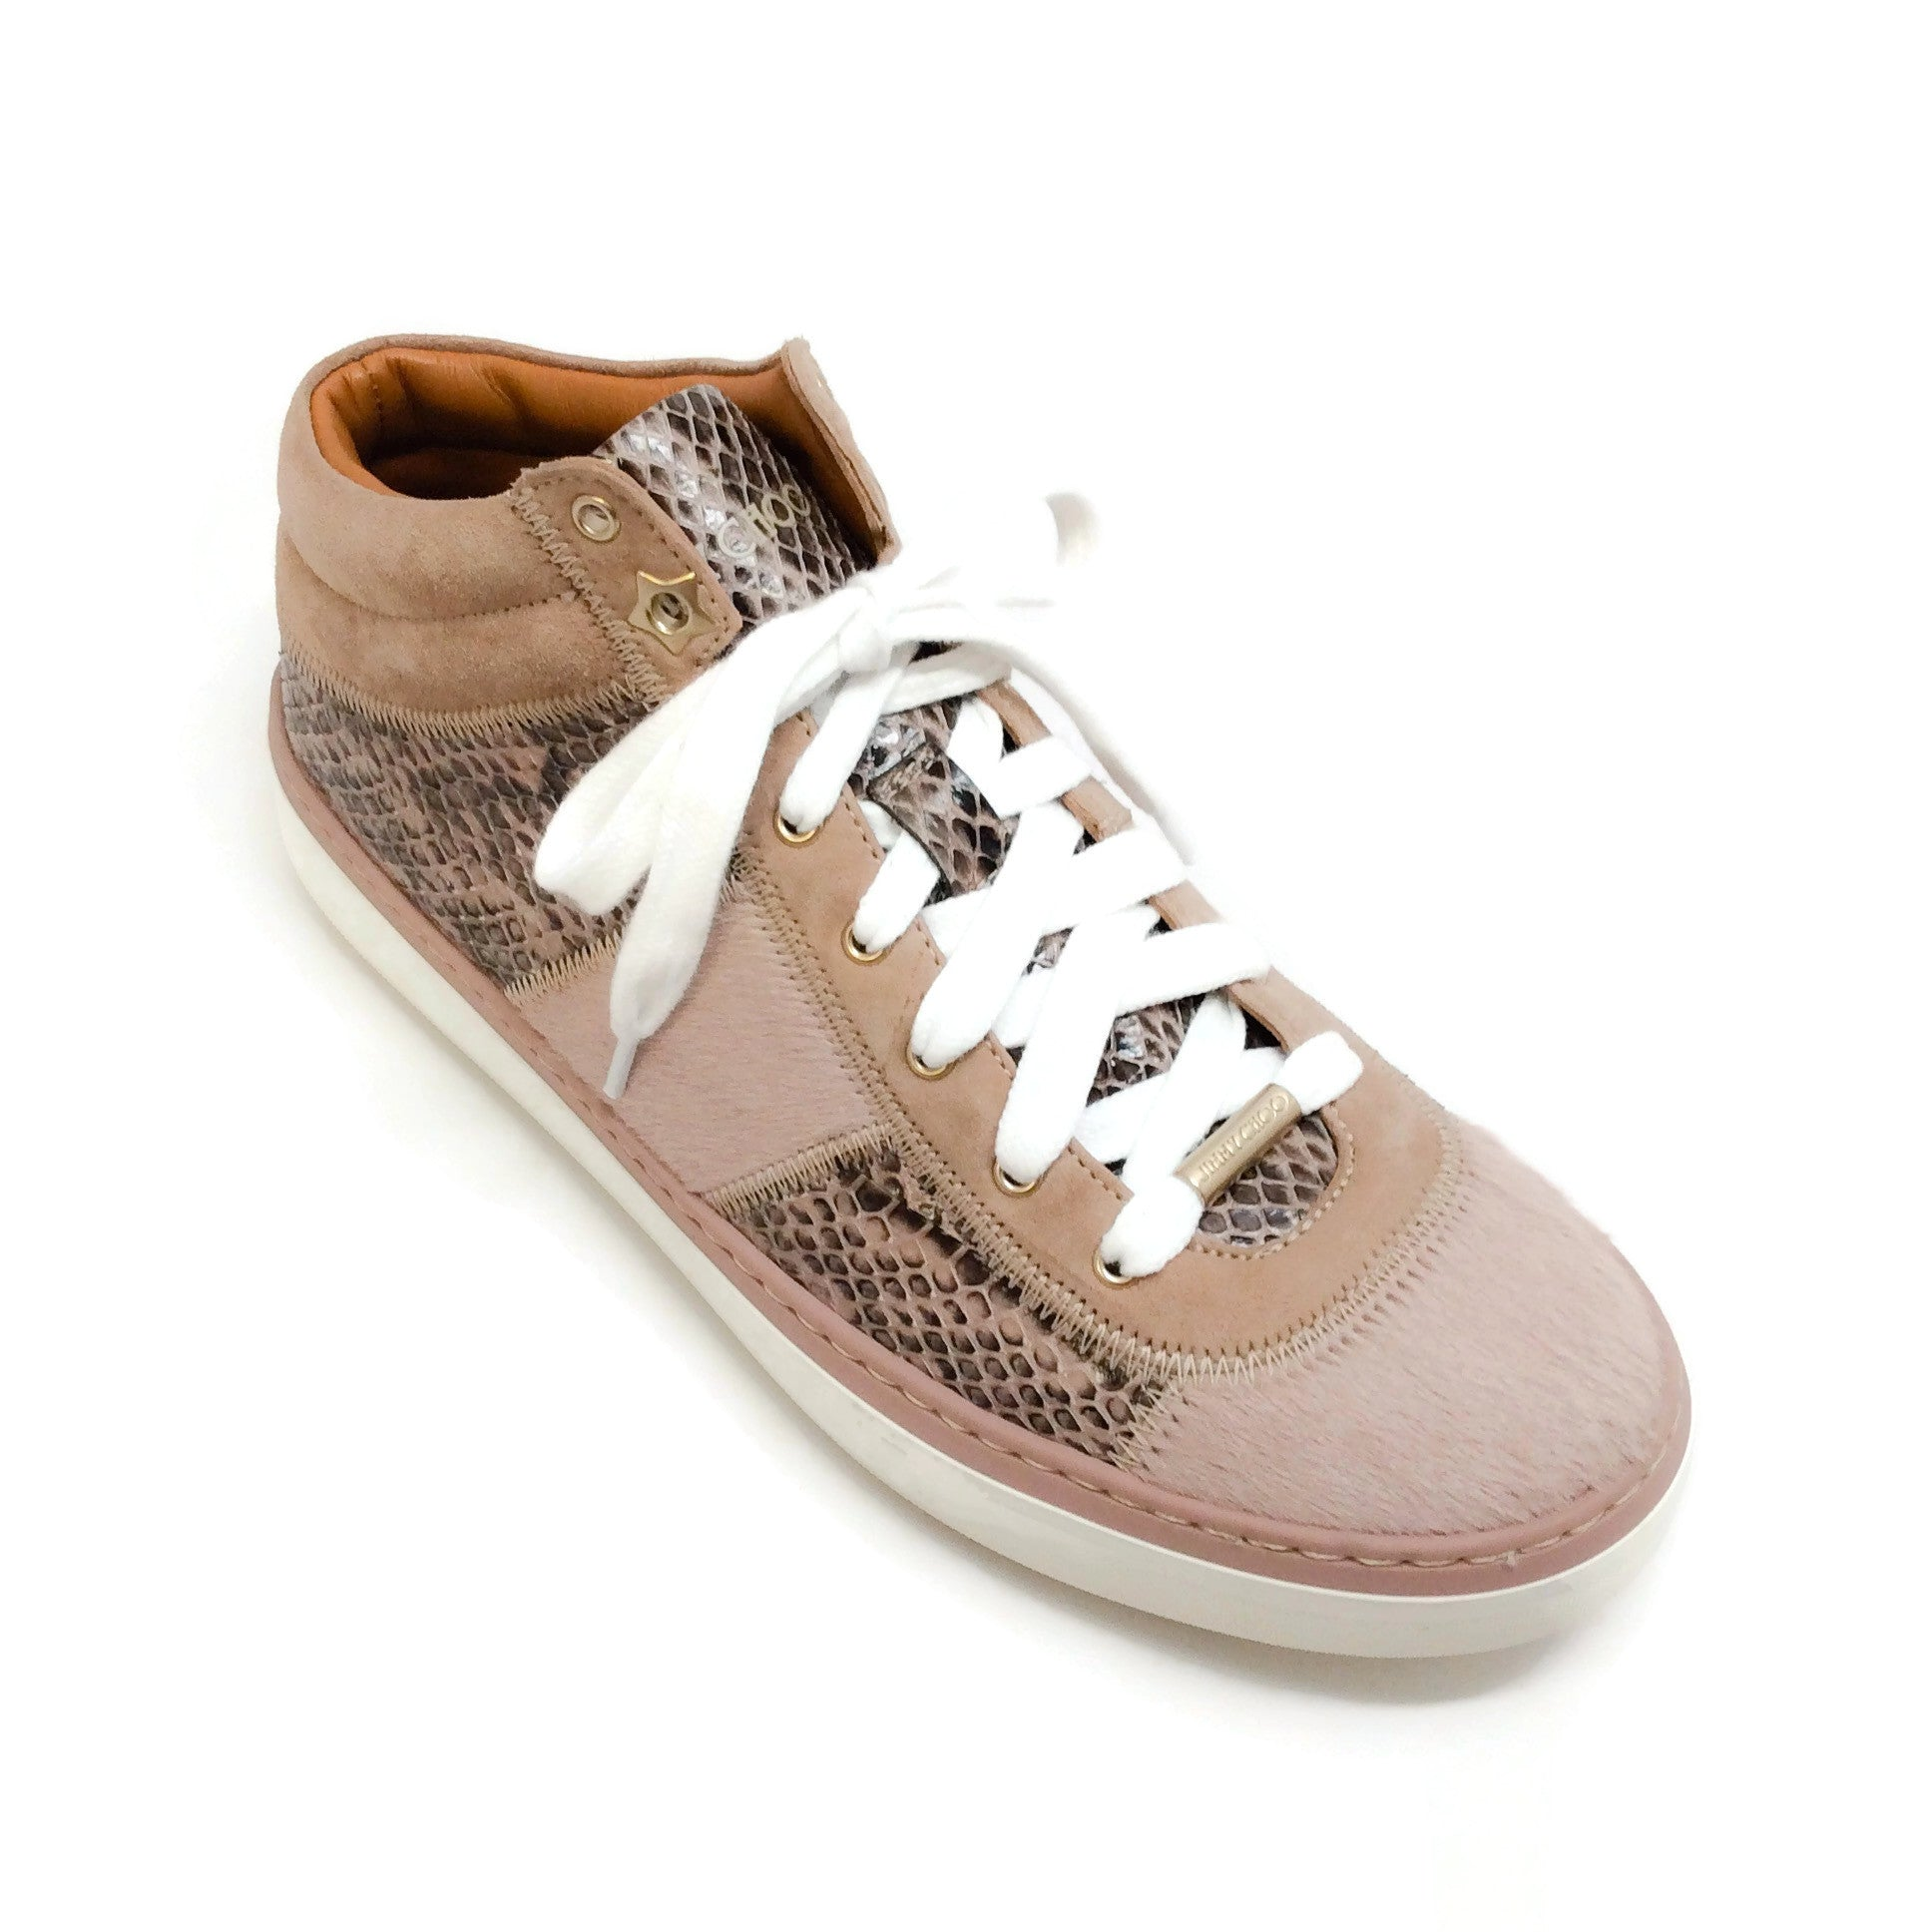 Jimmy Choo Blush Snake / Pony Sneakers